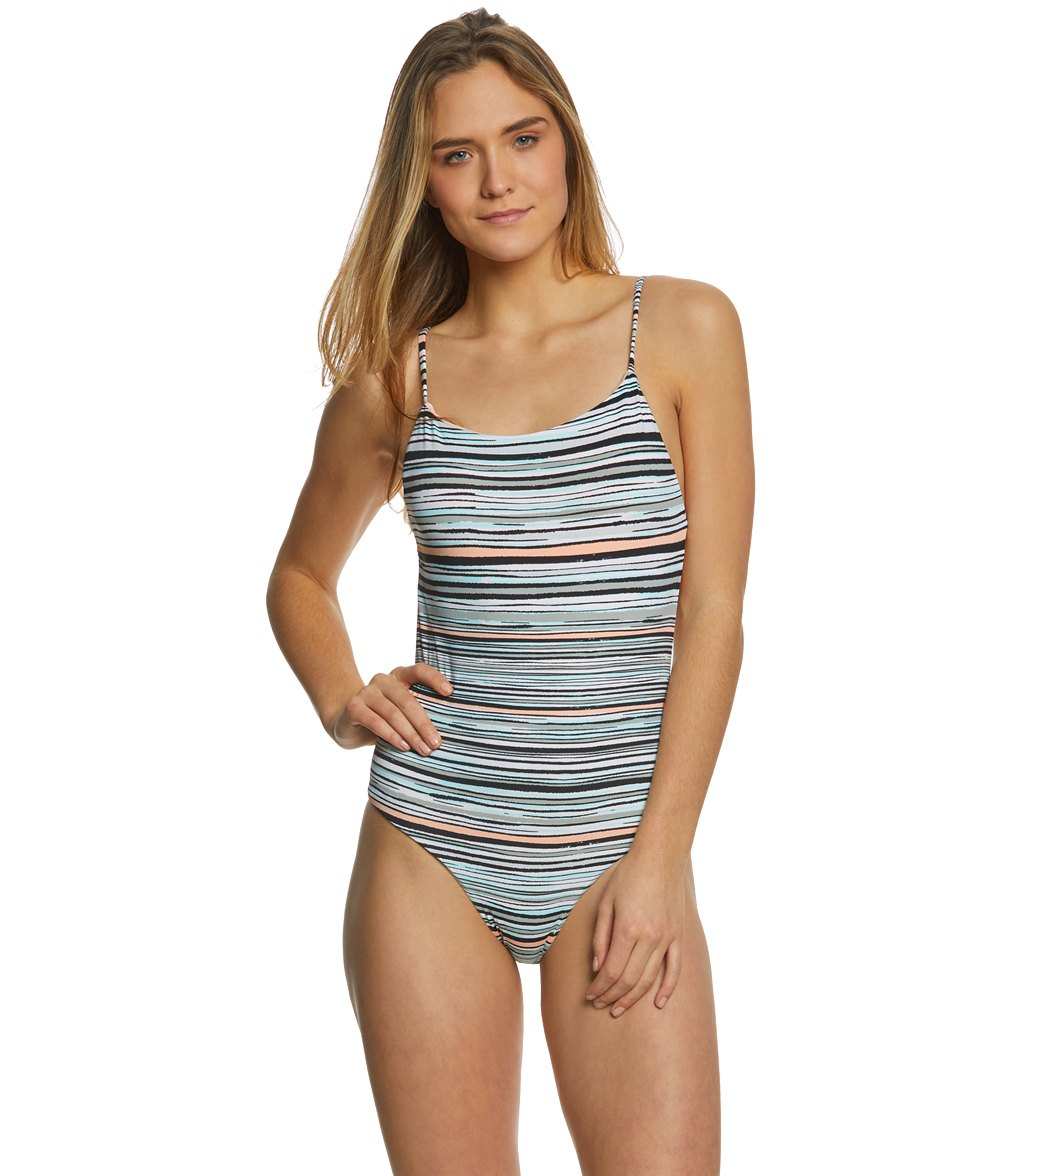 822244c03e Roxy Women s Girl Of The Sea One Piece Swimsuit at SwimOutlet.com - Free  Shipping